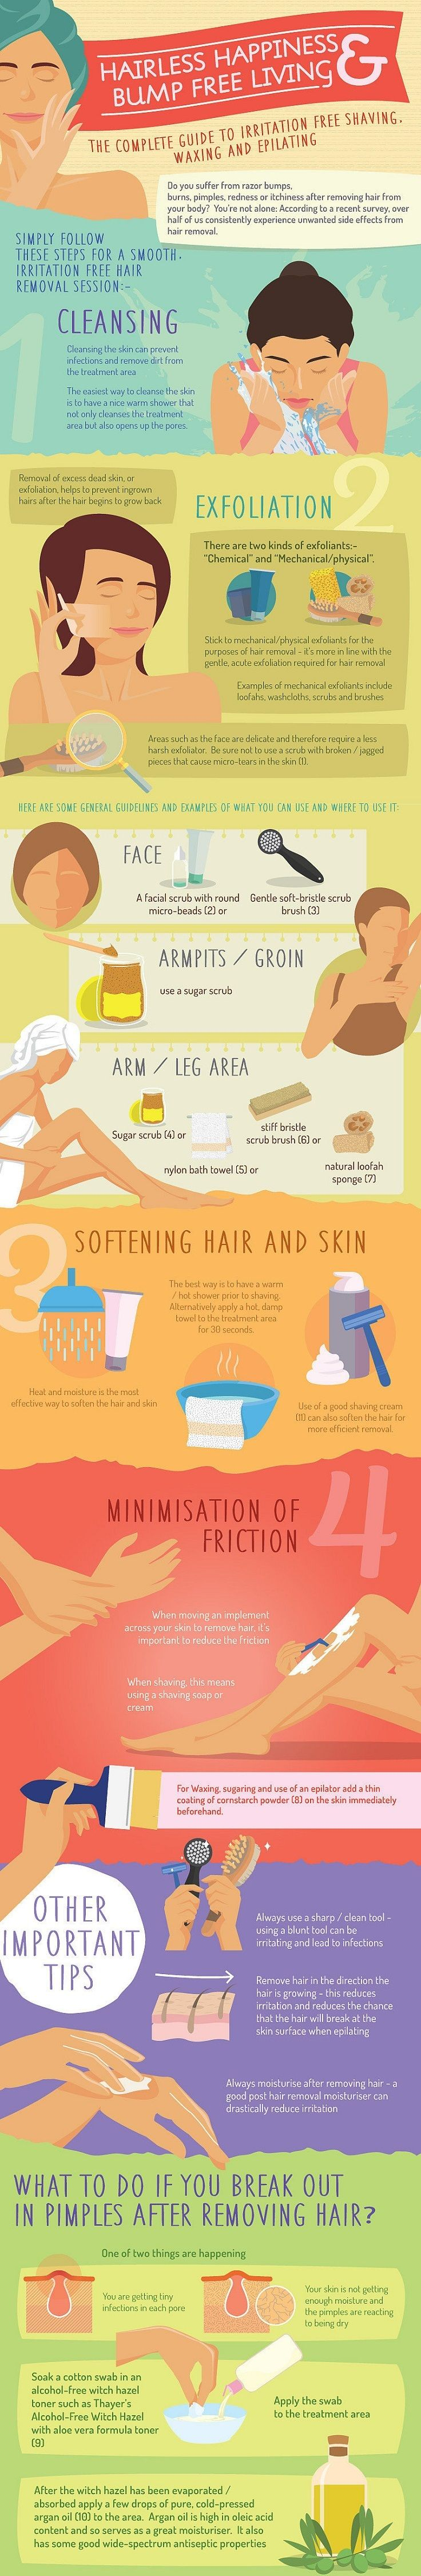 5-Minute Hair Removal Tips That Will Guarantee a Bump-Free Beach Bod